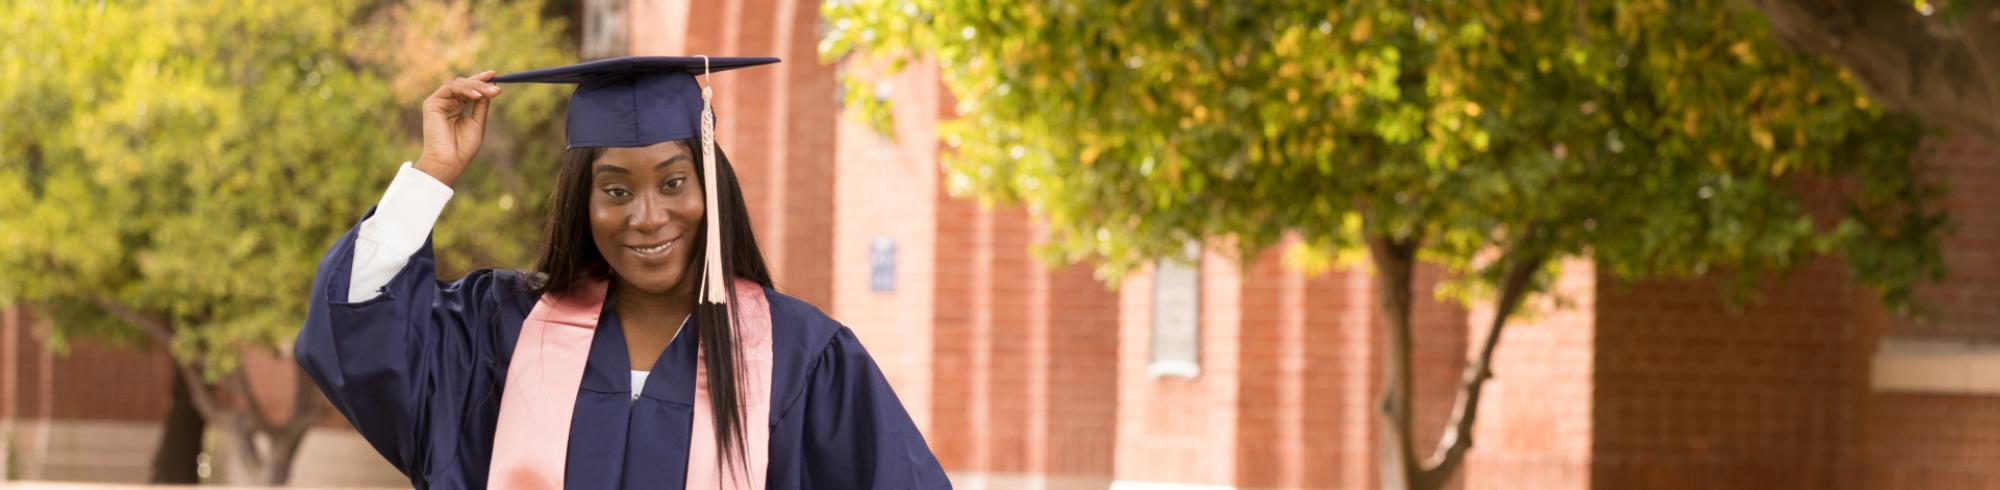 Headshot of a student in regalia as they smile towards the camera holding their cap